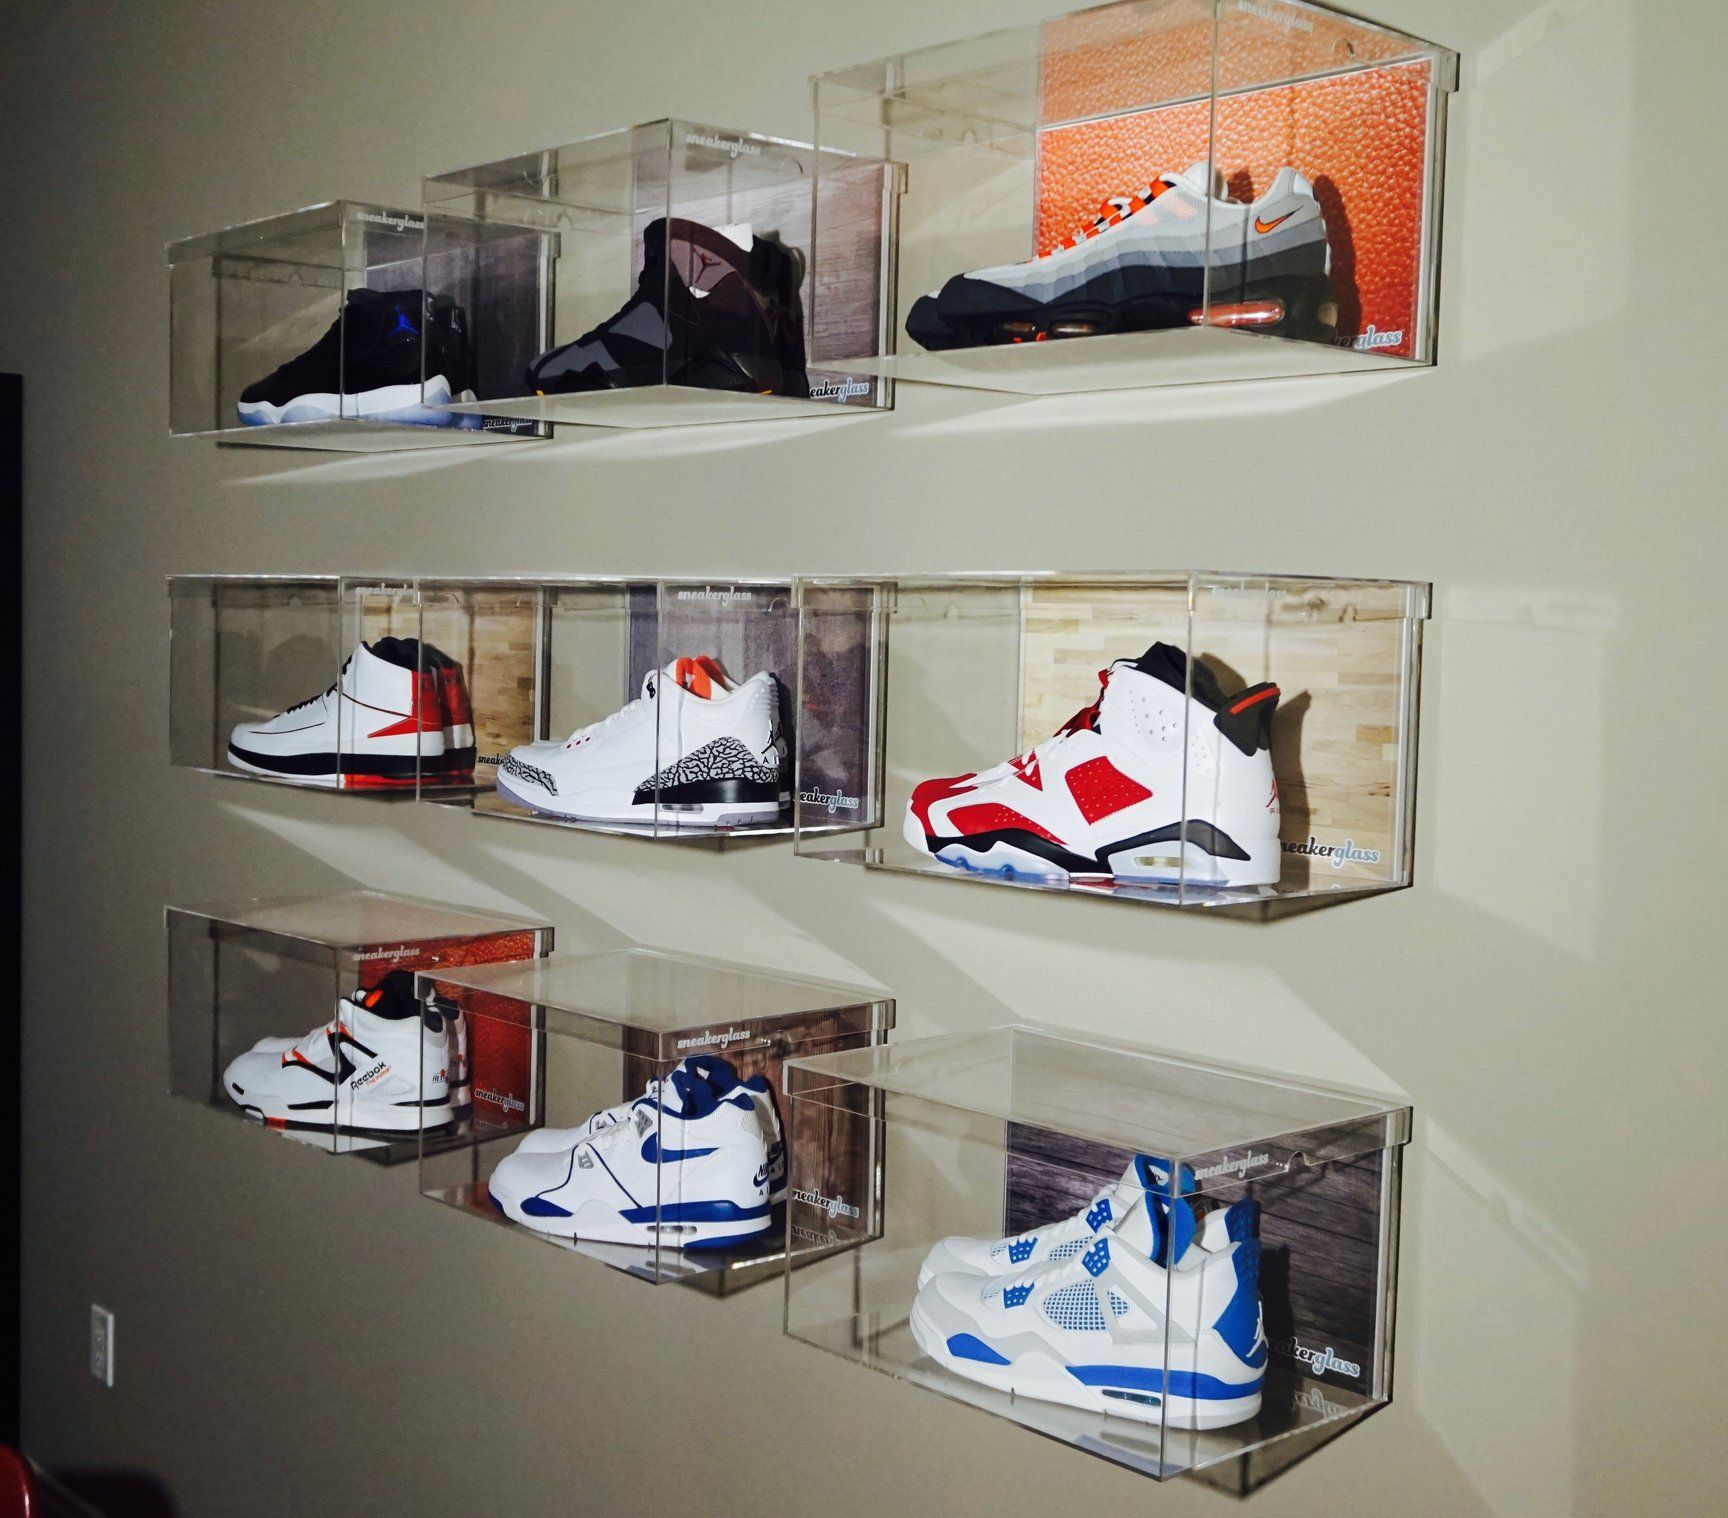 Floating Wall Box Large Shoe Boxes On Wall Sneaker Displays Sneakerhead Room